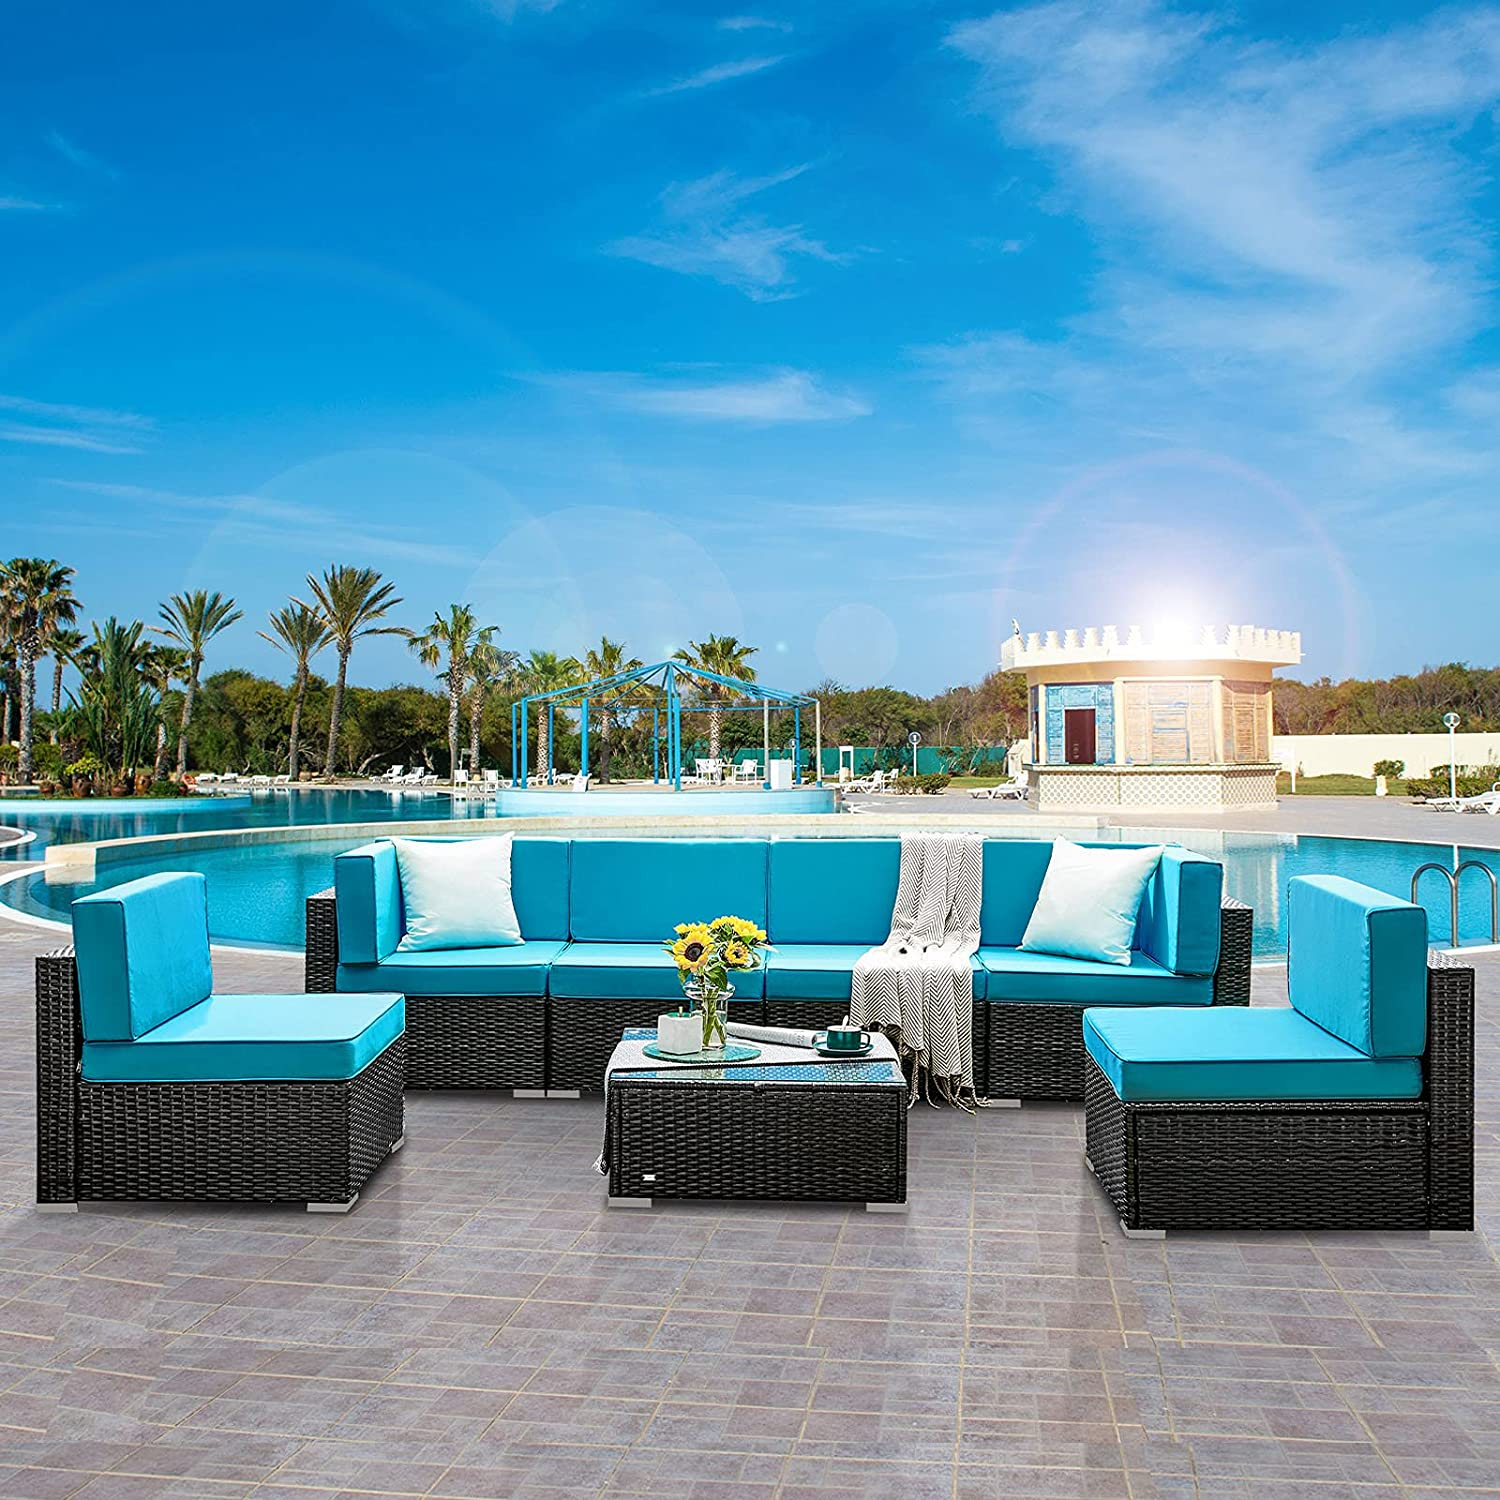 HONBAY 7 Pieces Outdoor Patio Furniture Sets PE Wicker Rattan Patio Sectional Sofa Couch with Cushions and Coffee Table for Garden Poolside(Blue)